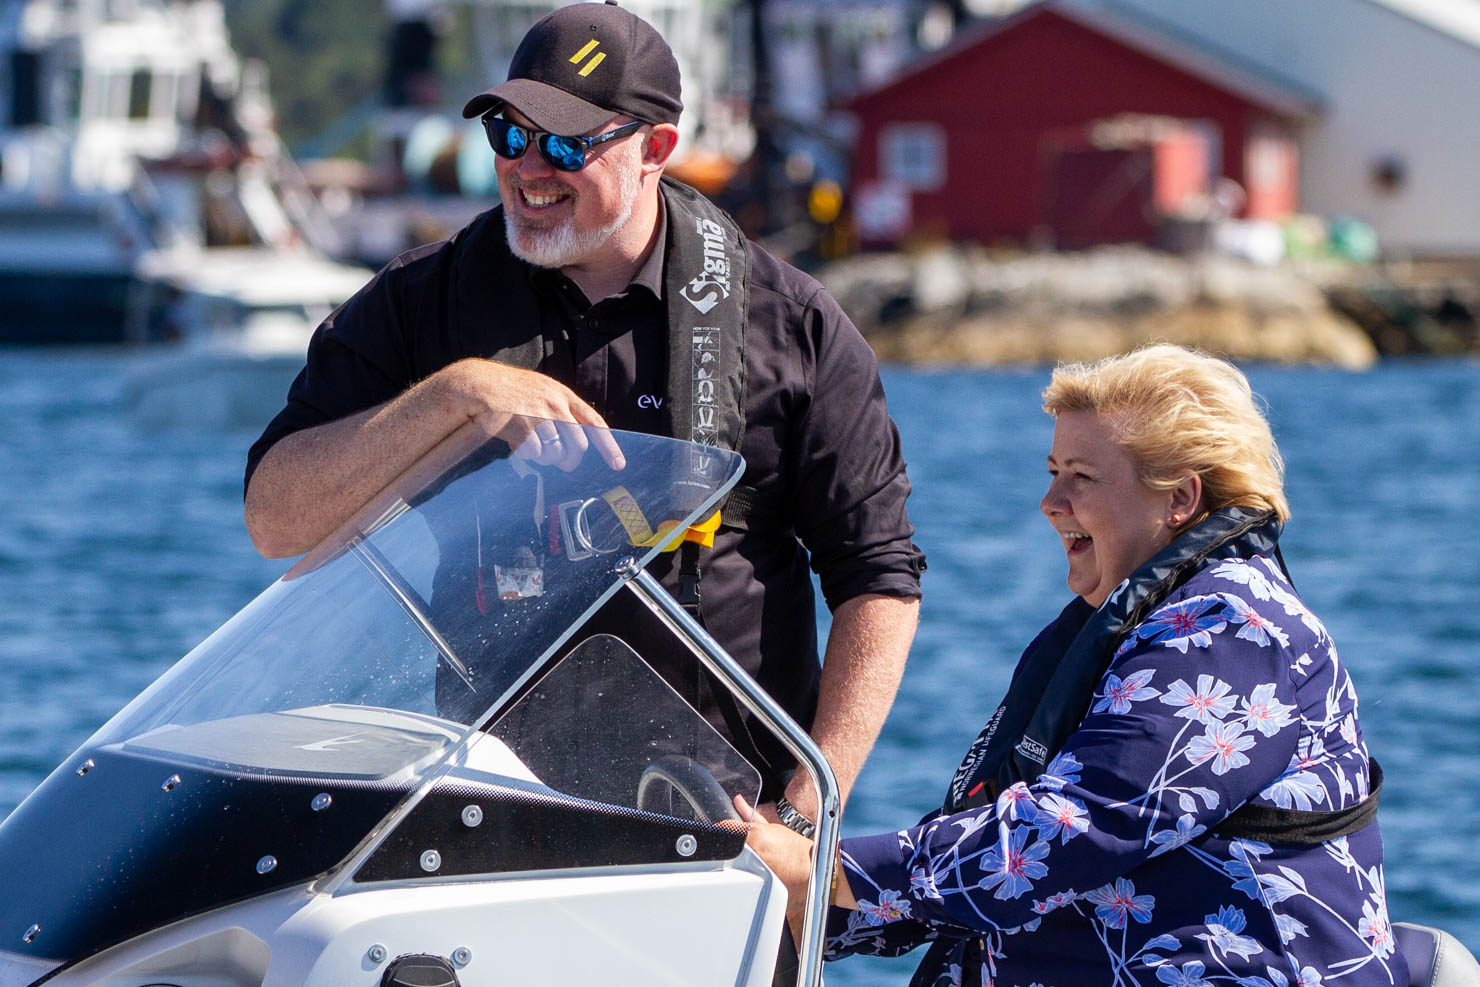 Leif Stavøstrand with Norwegian Prime Minister Erna Solberg driving an electric boat